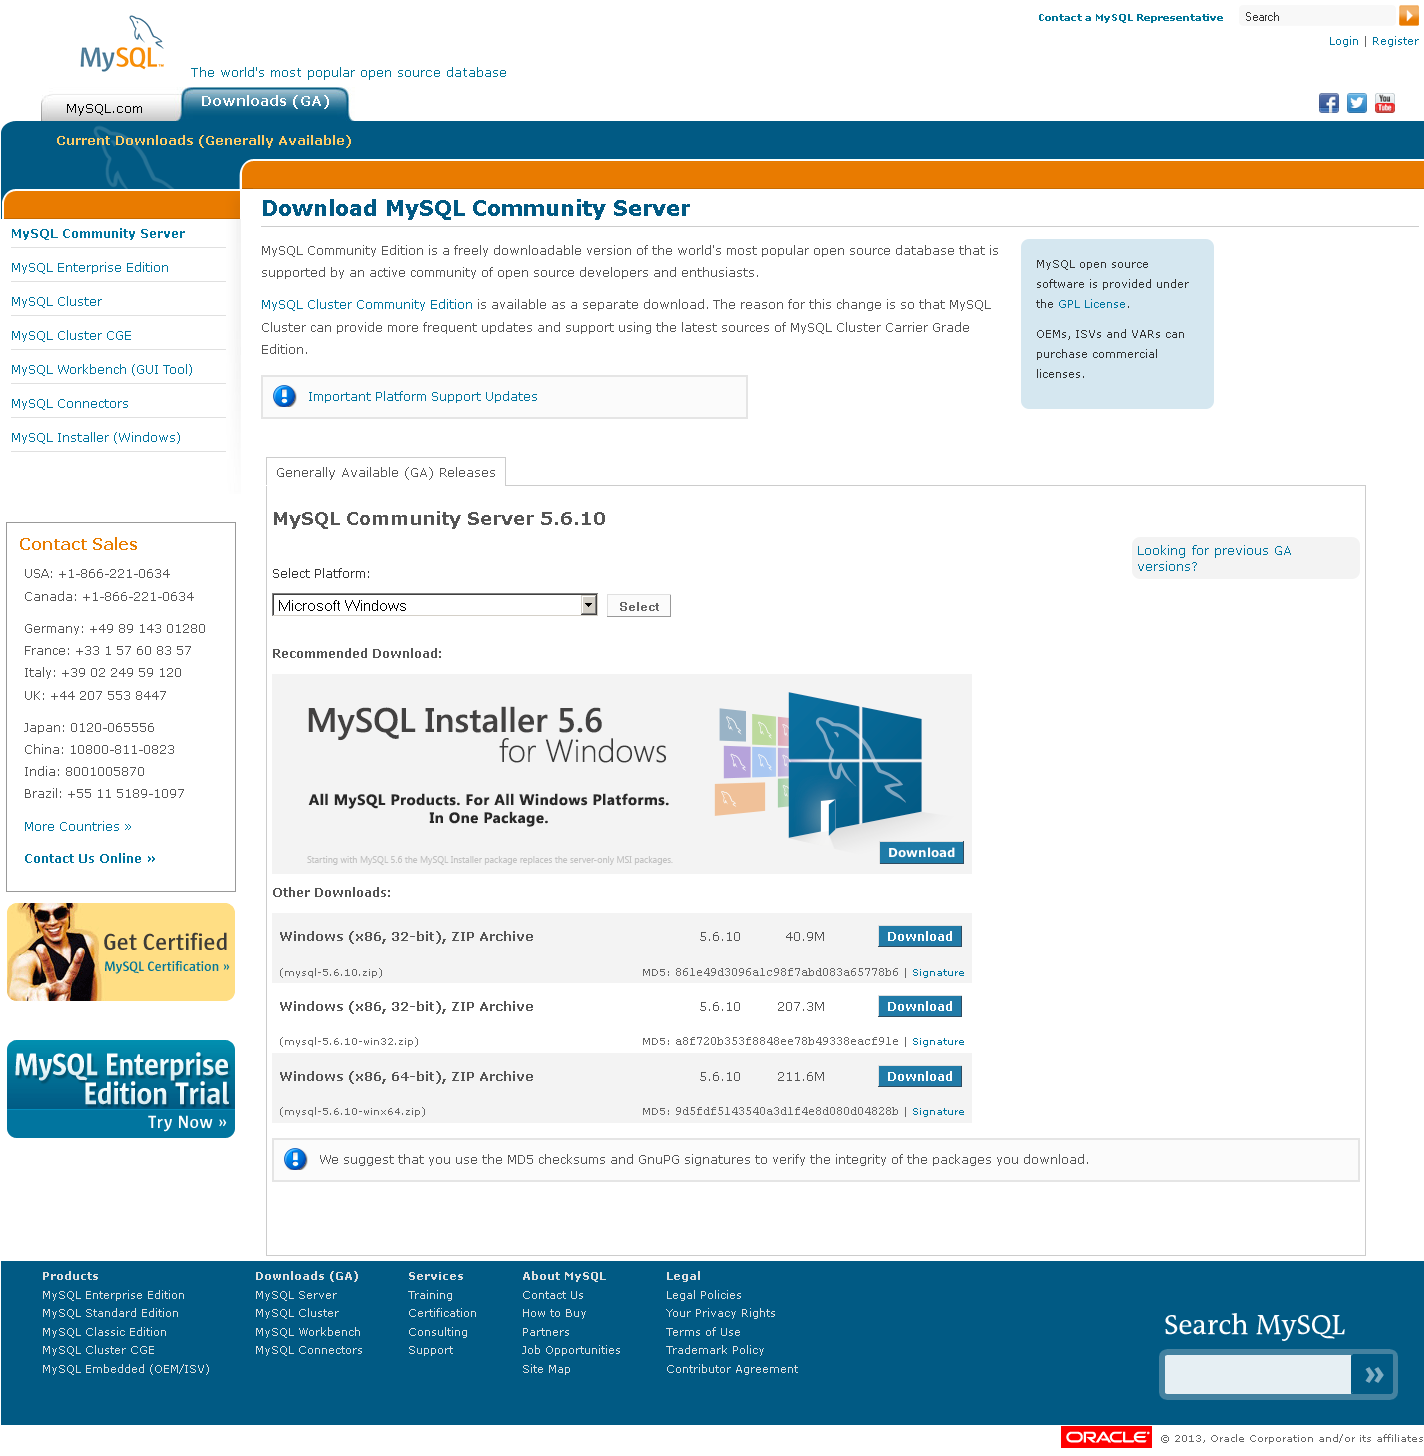 MySQL Community Server download page